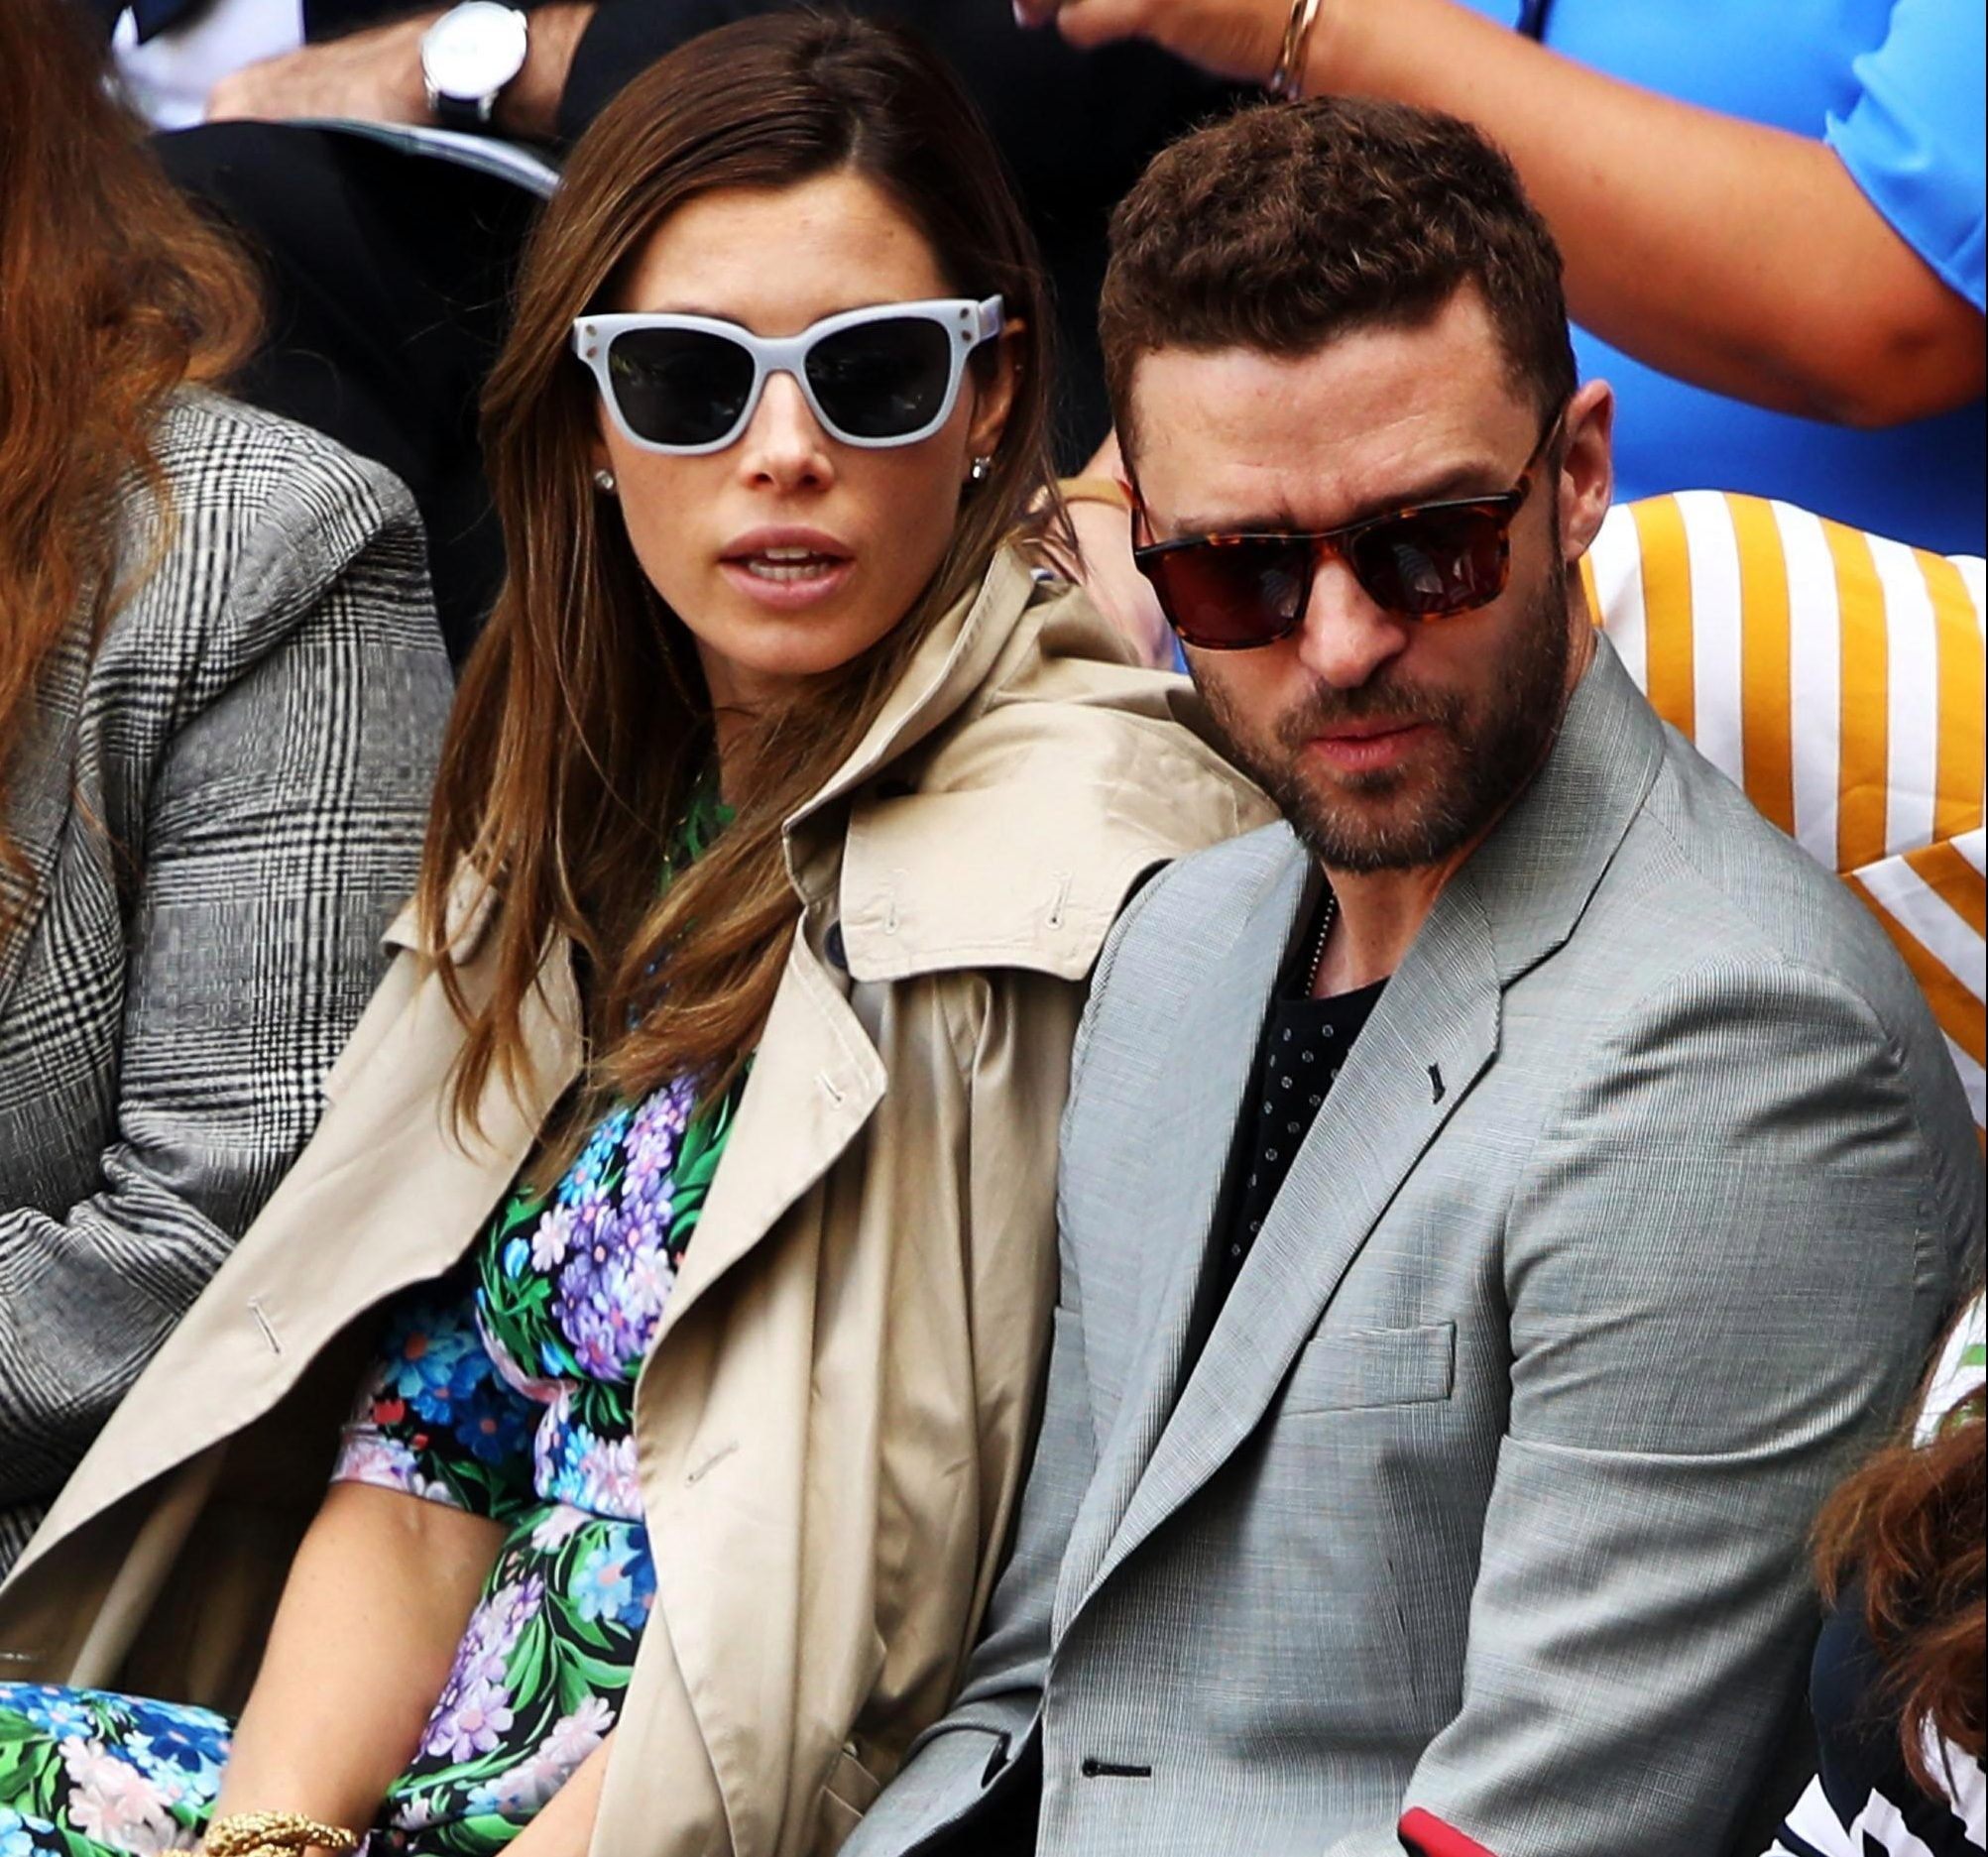 Justin Timberlake got in on the action with wife Jessica Biel